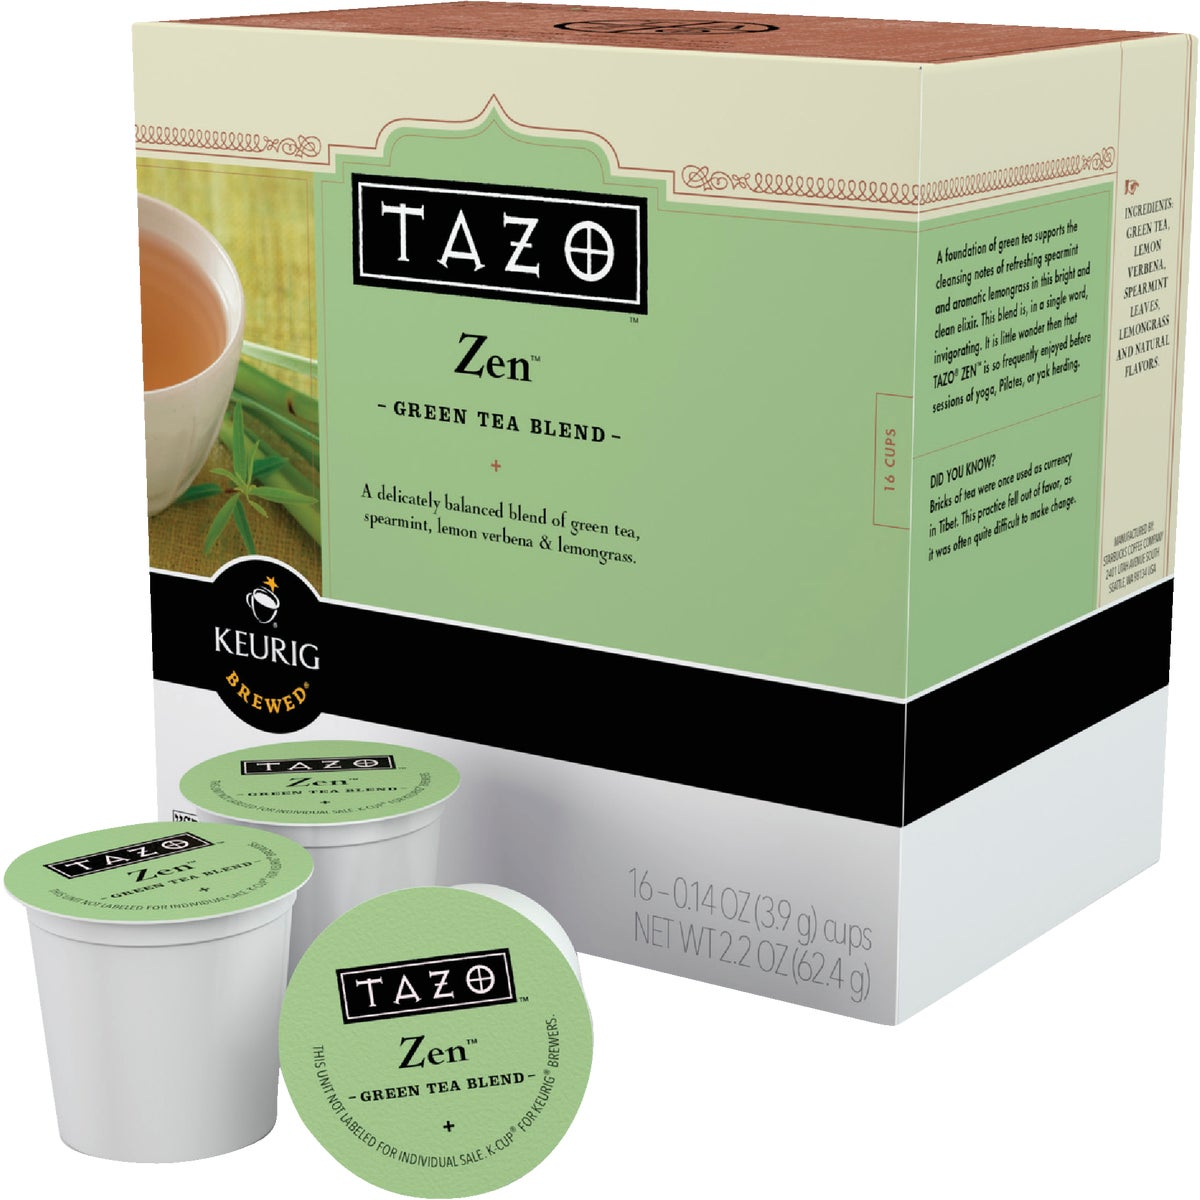 K-CUP TAZO ZEN TEA - 10519 by Keurig     M Block